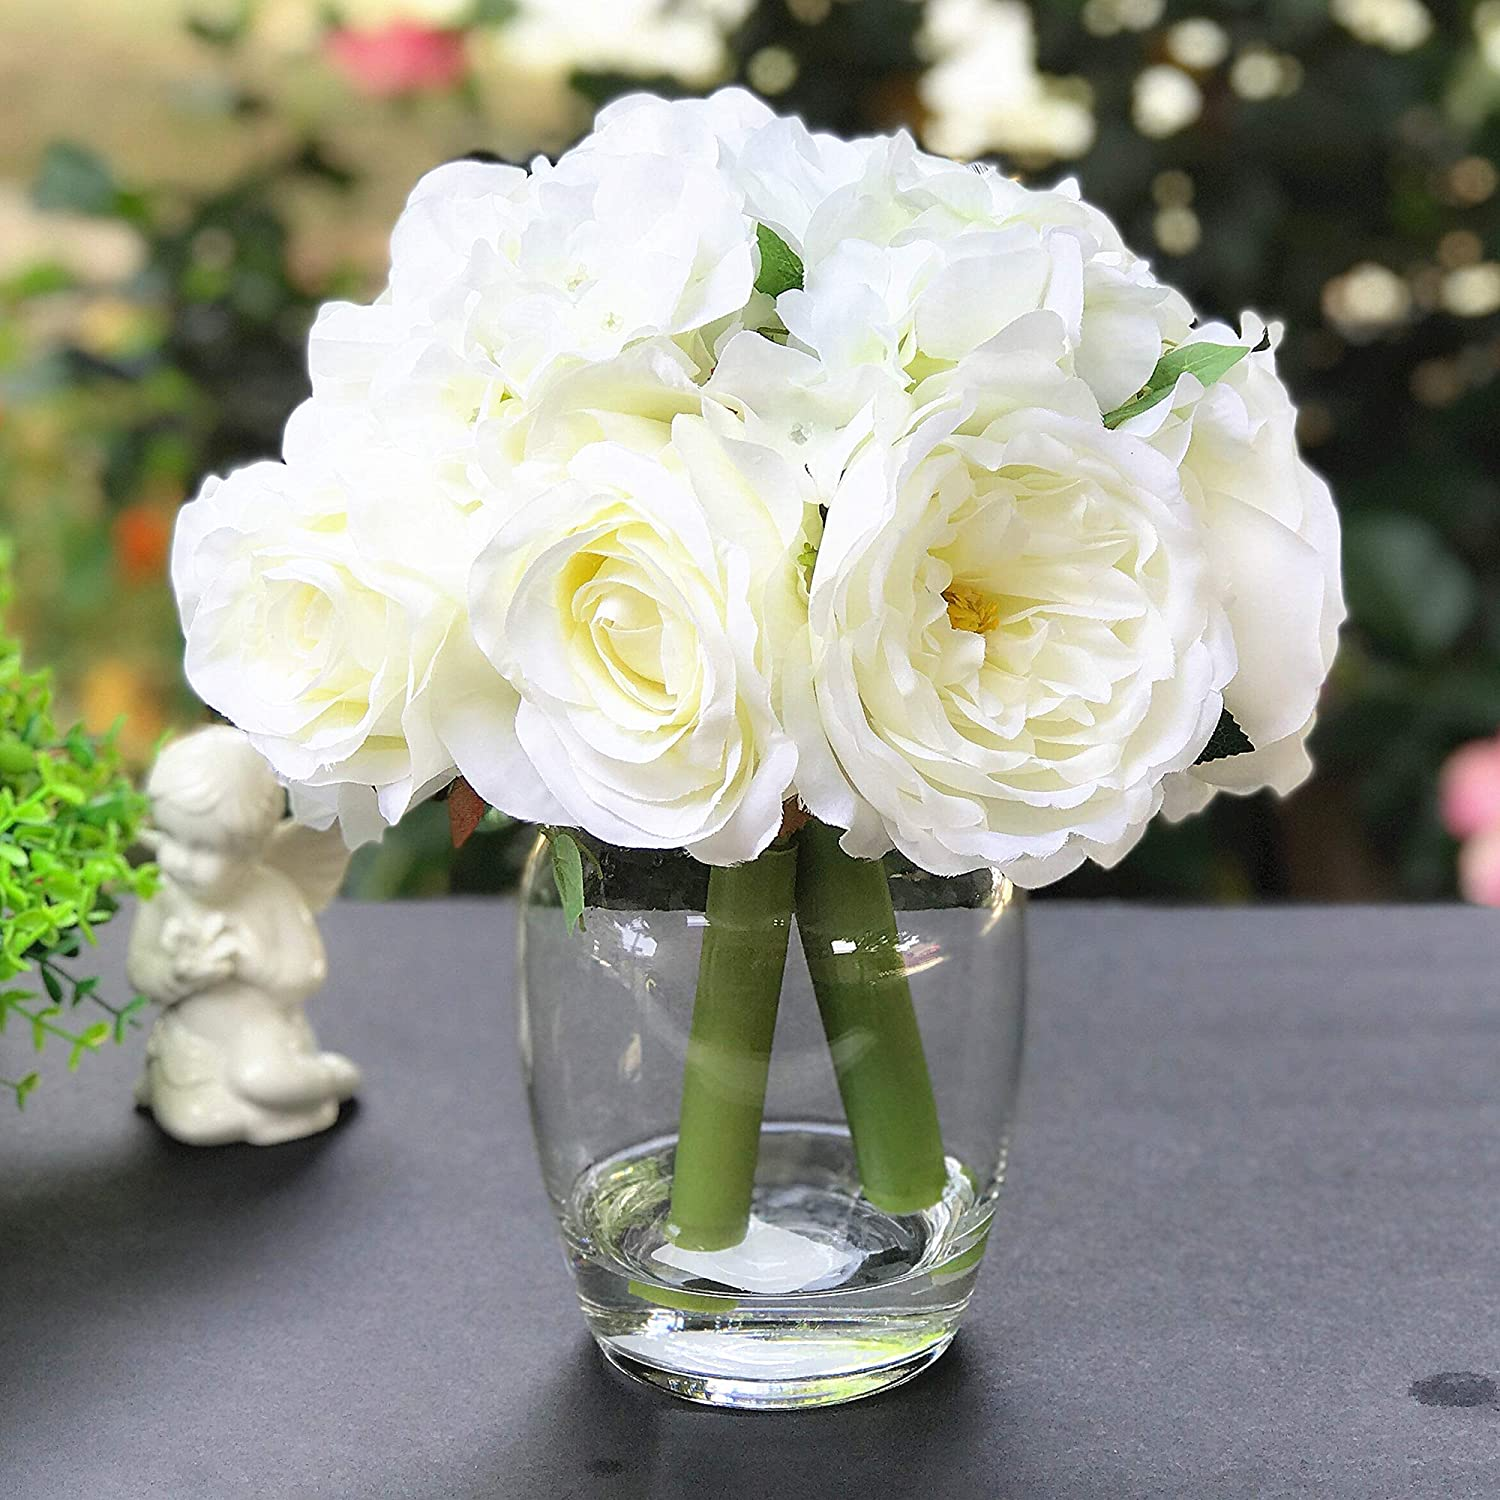 Amazon Com Enova Home Peony Rose And Hydrangea Mixed Faux Flower Arrangement With Clear Glass Vase Flower Centerpiece For Home Office Decoration Cream Home Kitchen